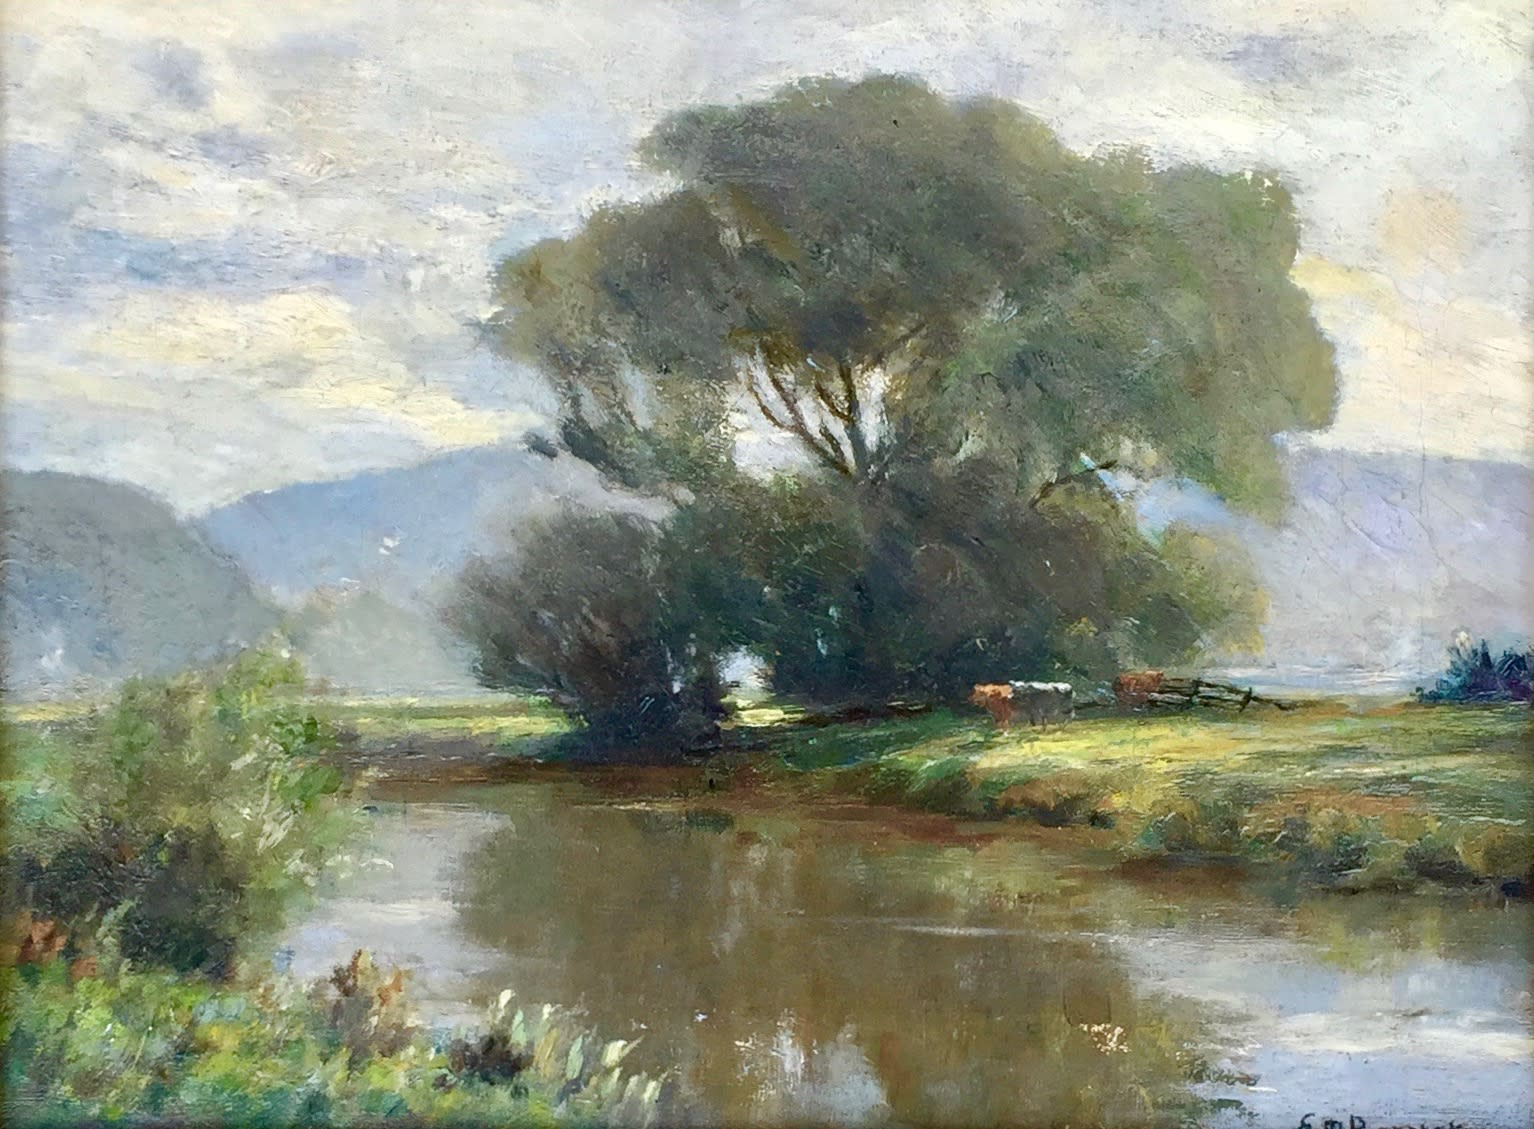 Edward Mitchell Bannister, Untitled (Stream and Trees on Right), c.1880